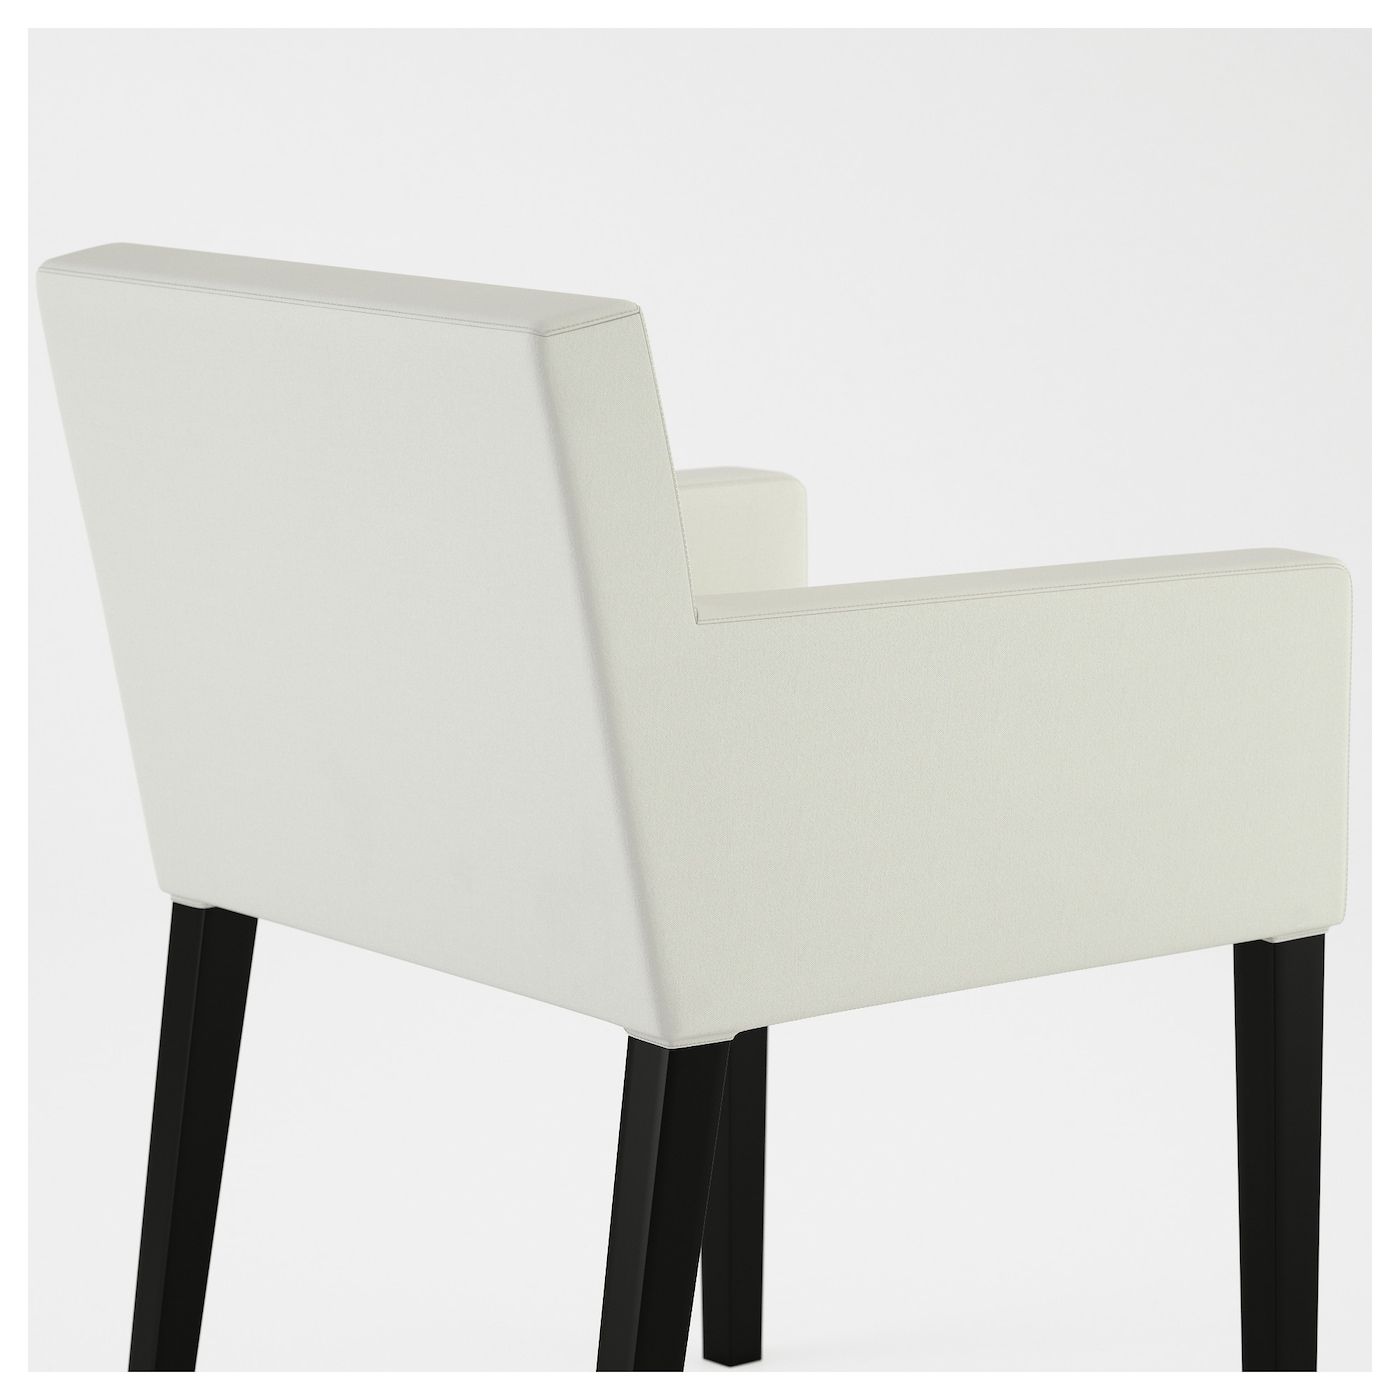 IKEA NILS chair with armrests The cover can be machine washed.